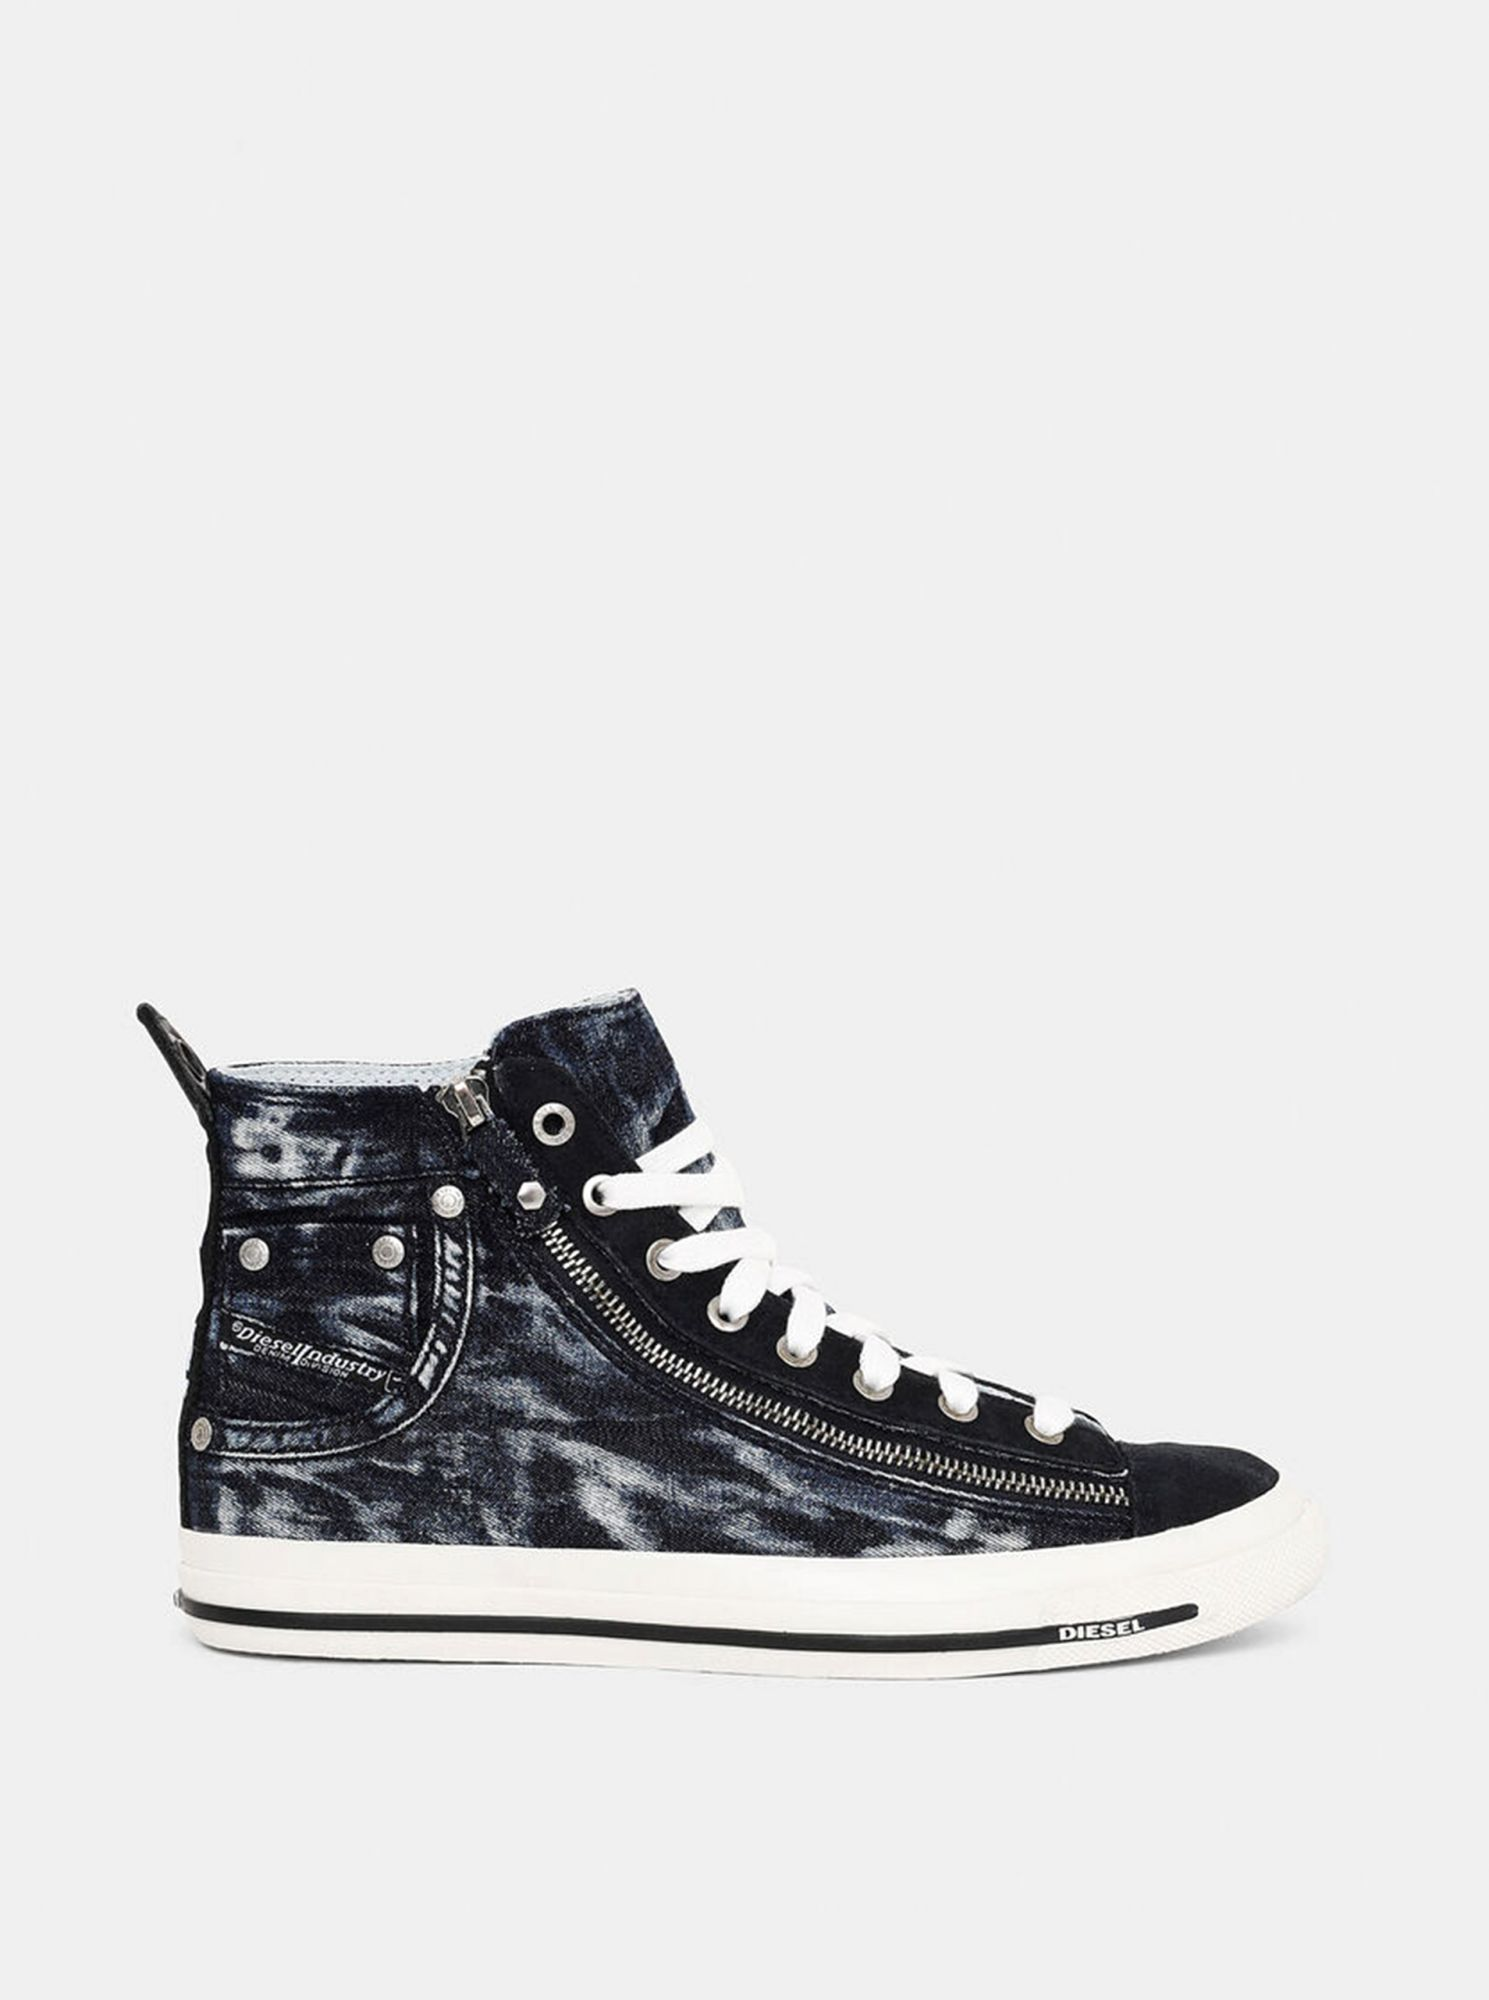 Black patterned women's sneakers with leather Diesel details